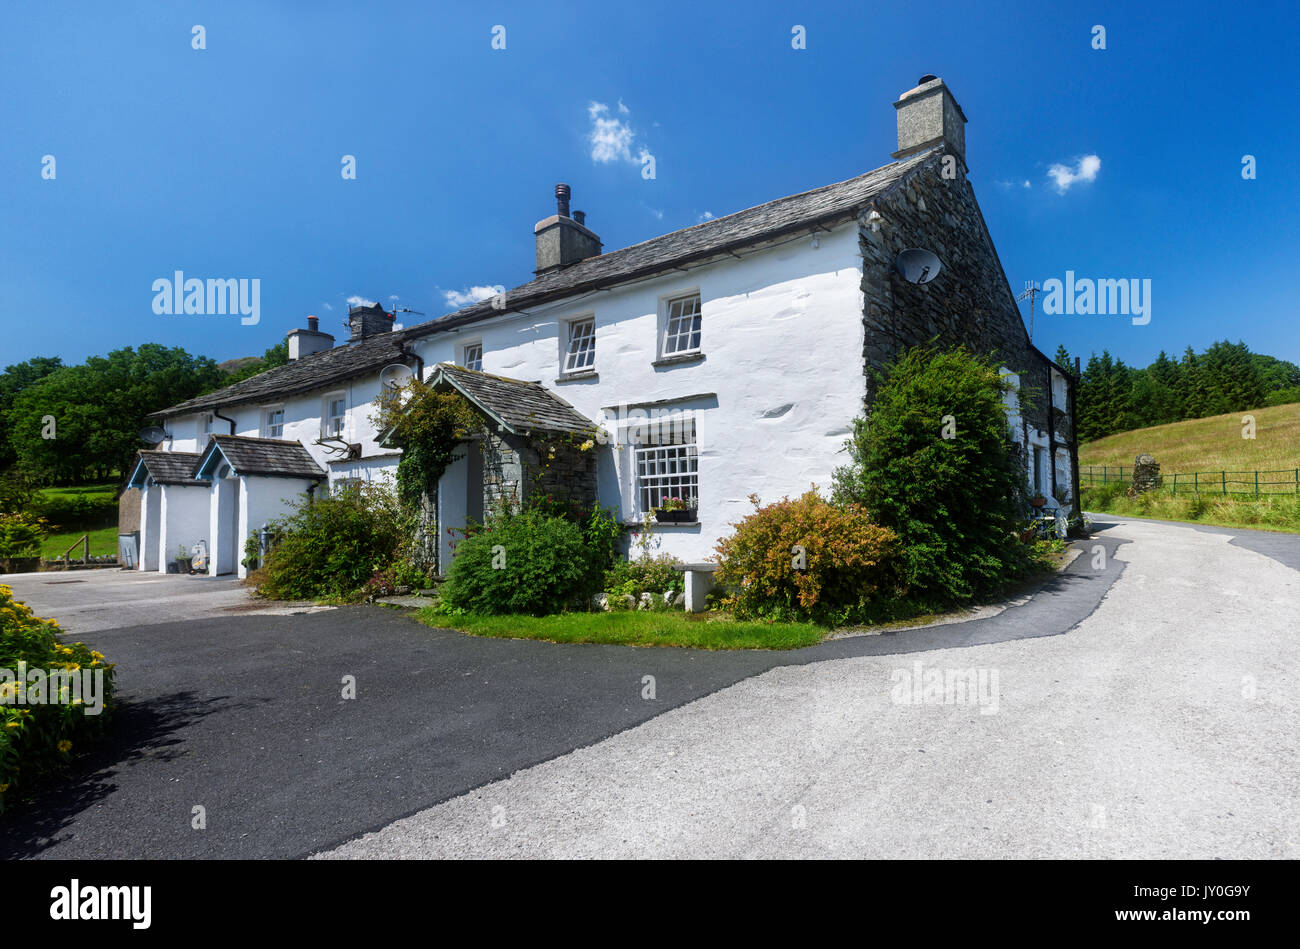 Whitewashed country cottage near Elterwater in the Langdale area of the English Lake District - Stock Image